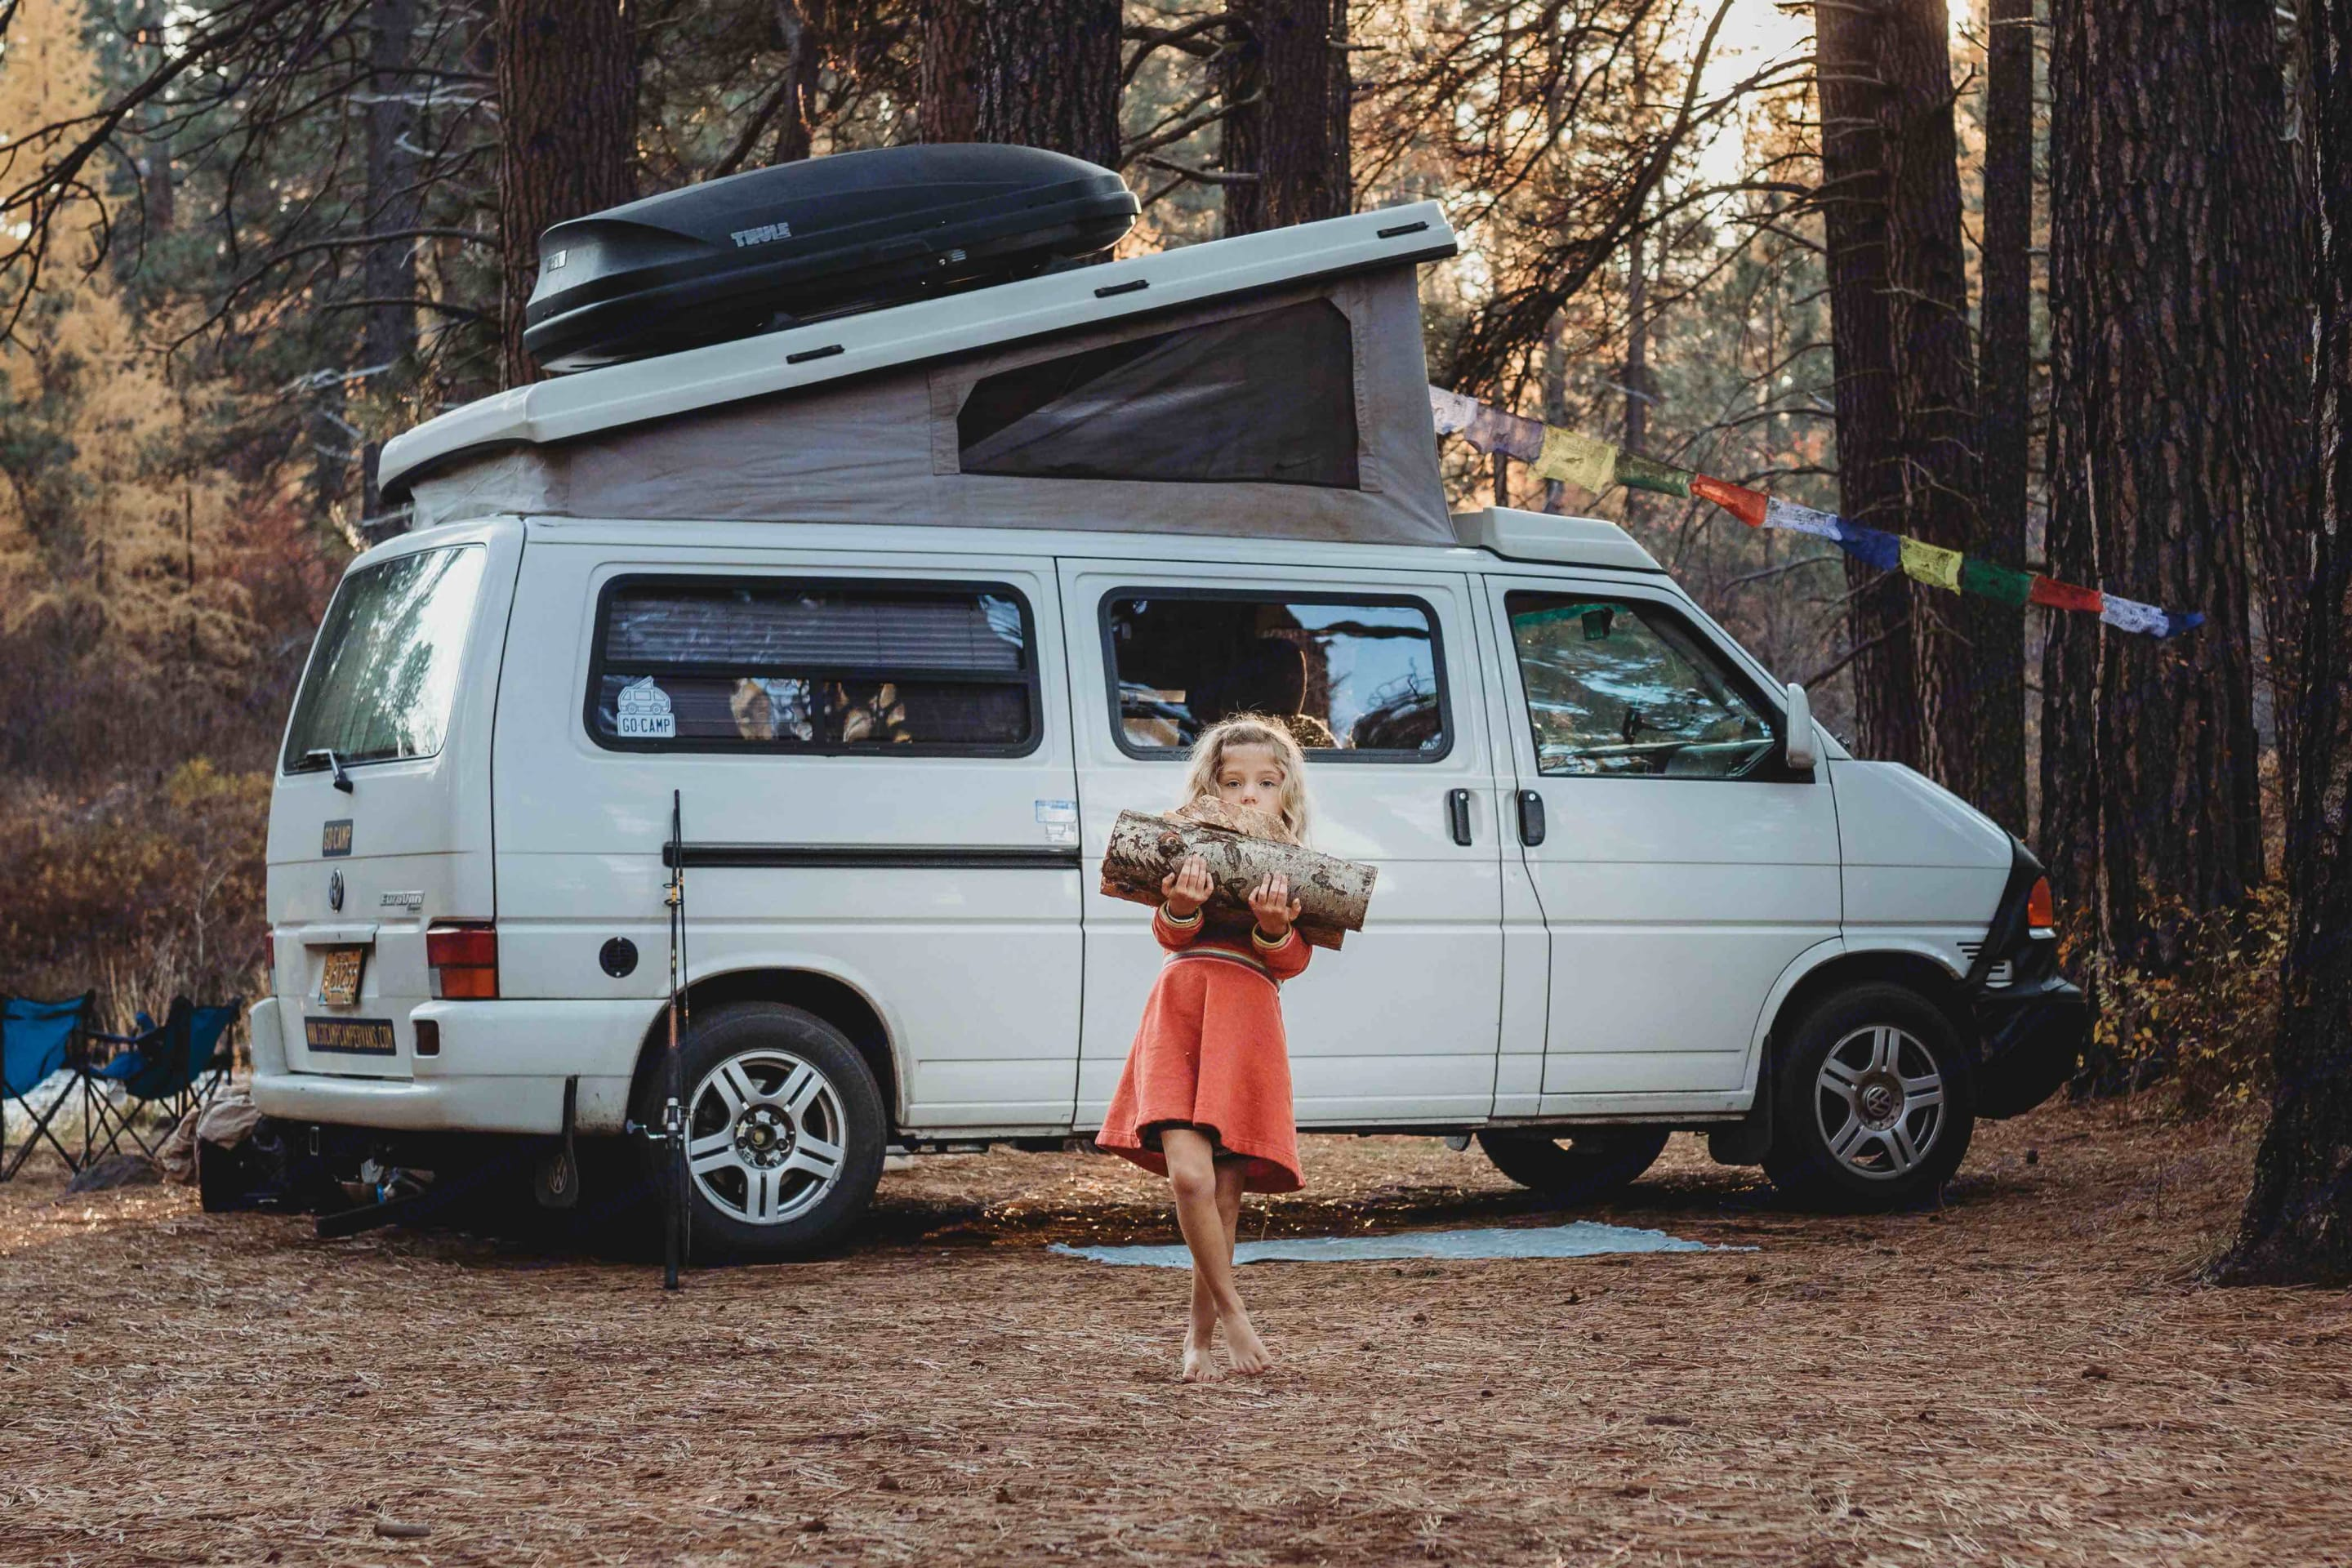 This Eurovan Camper is the perfect place to hang streamers!. Volkswagen Eurovan Camper 2002